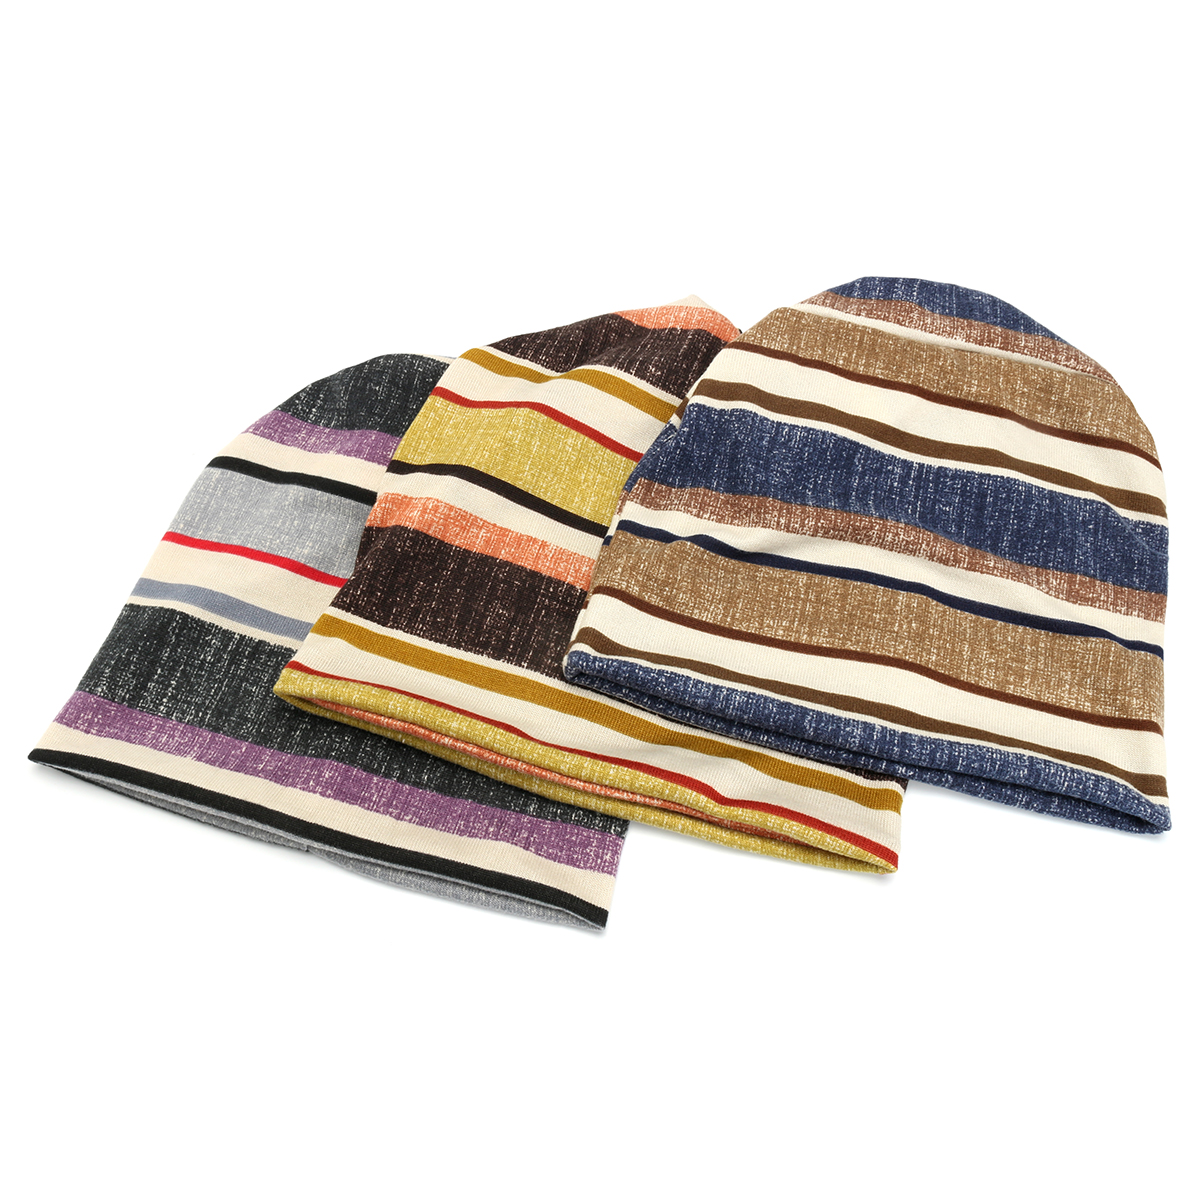 a256ebce Unisex Autumn Winter Warm Polyester Striped Hat Multi Functional Outdoor  Cycling Turban Hat Scarf. c203344f-a9c1-42a6-bf75-2e8aa2083831.